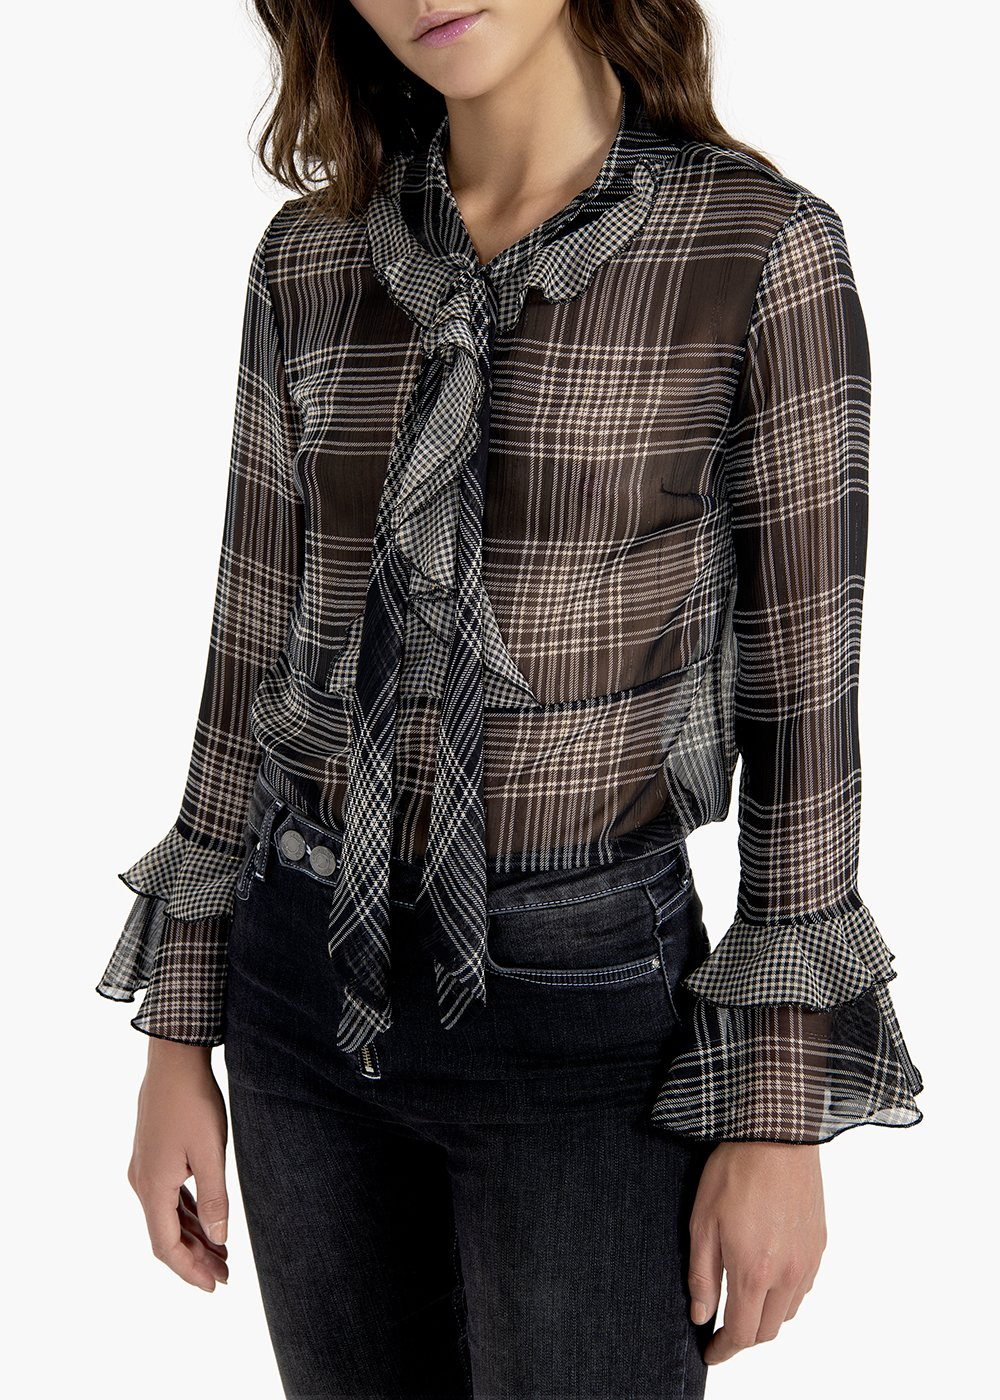 Shirt Samantha in check pattern georgette - Black / Grezzo Fantasia - Woman